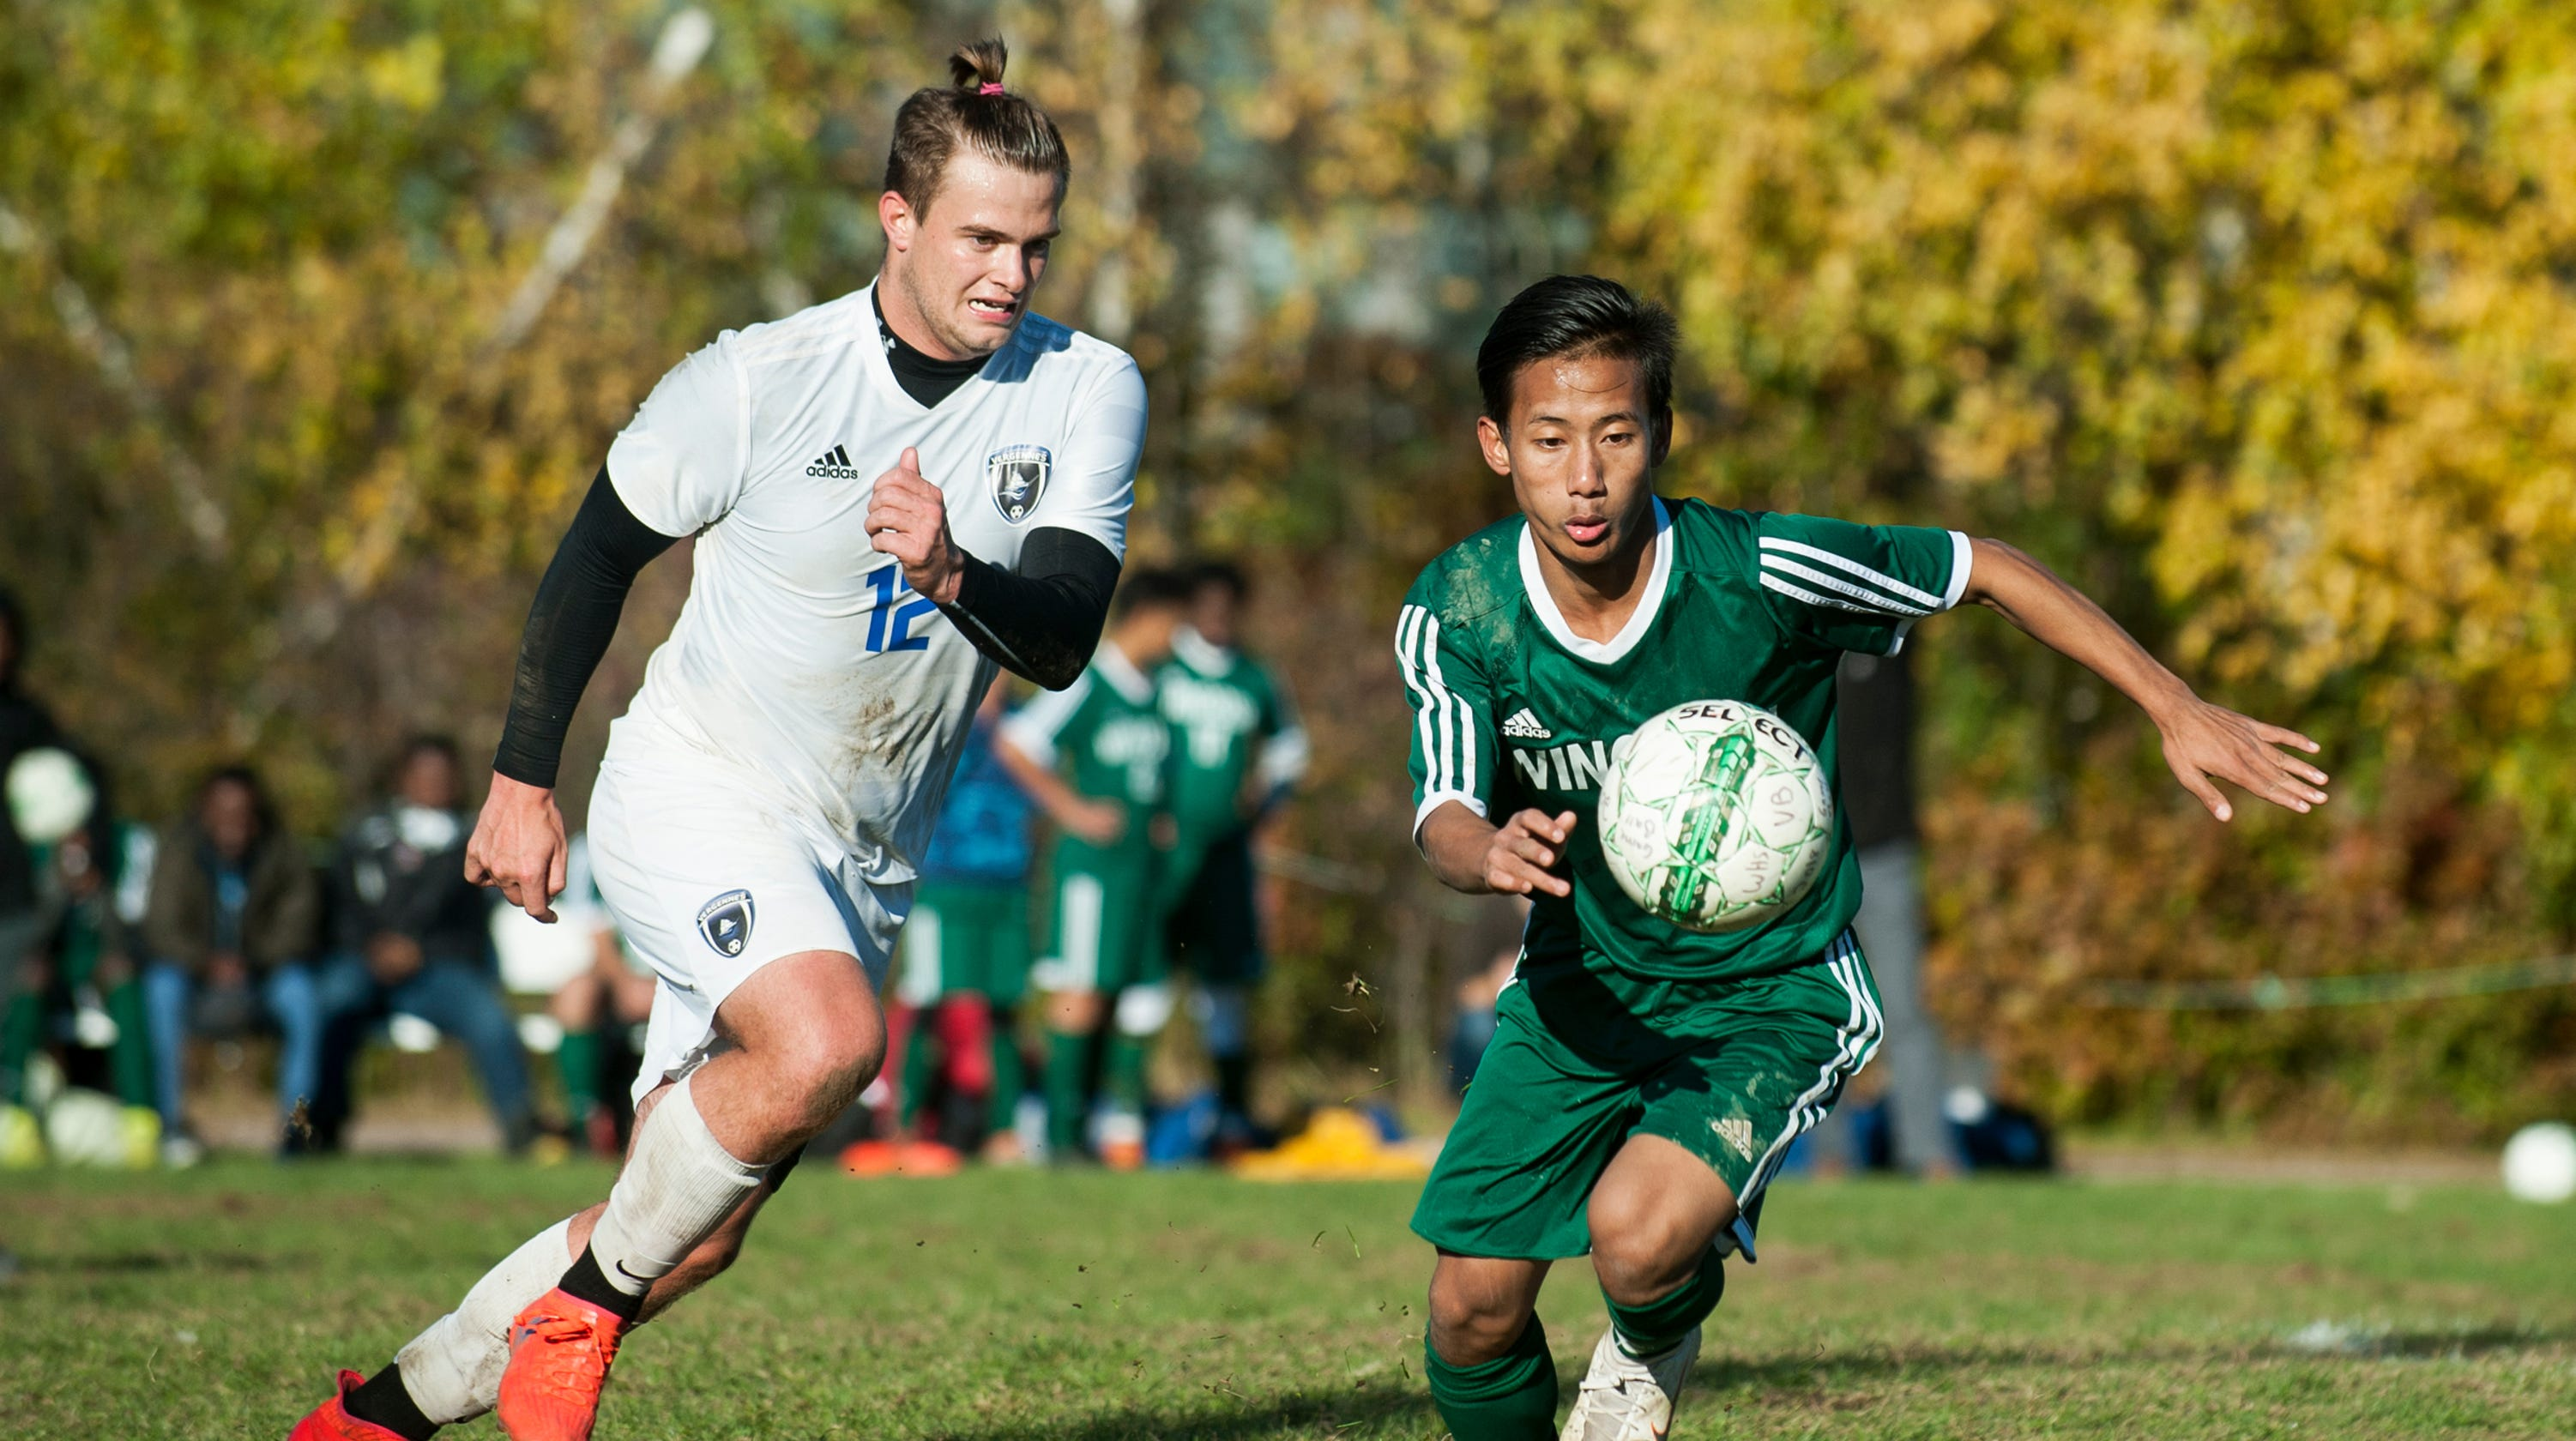 90defa70956a Vermont high school playoffs  Colchester girls soccer routs MAU